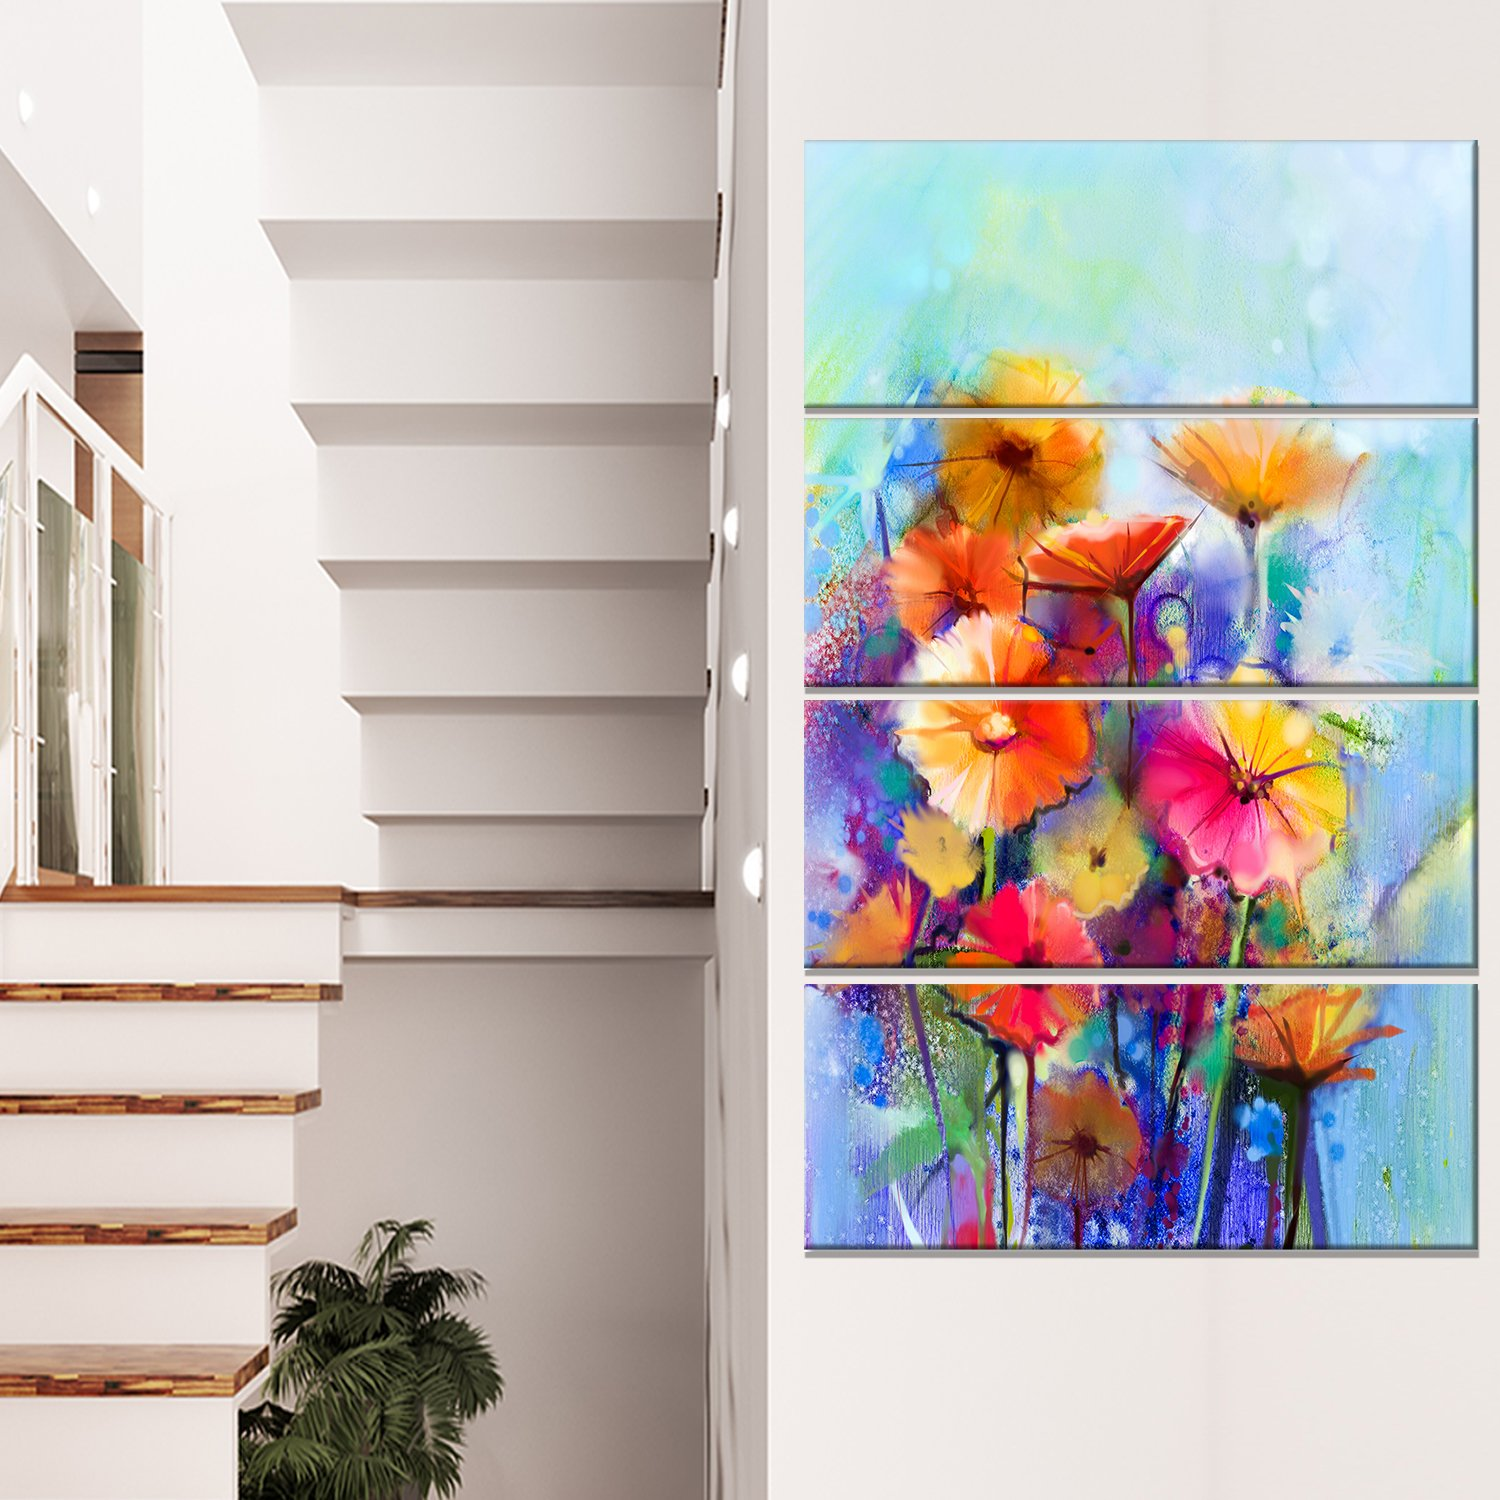 Designart PT15036-271V Abstract Floral Watercolor Painting Modern Floral Wall Art Canvas,,28x48 by Design Art